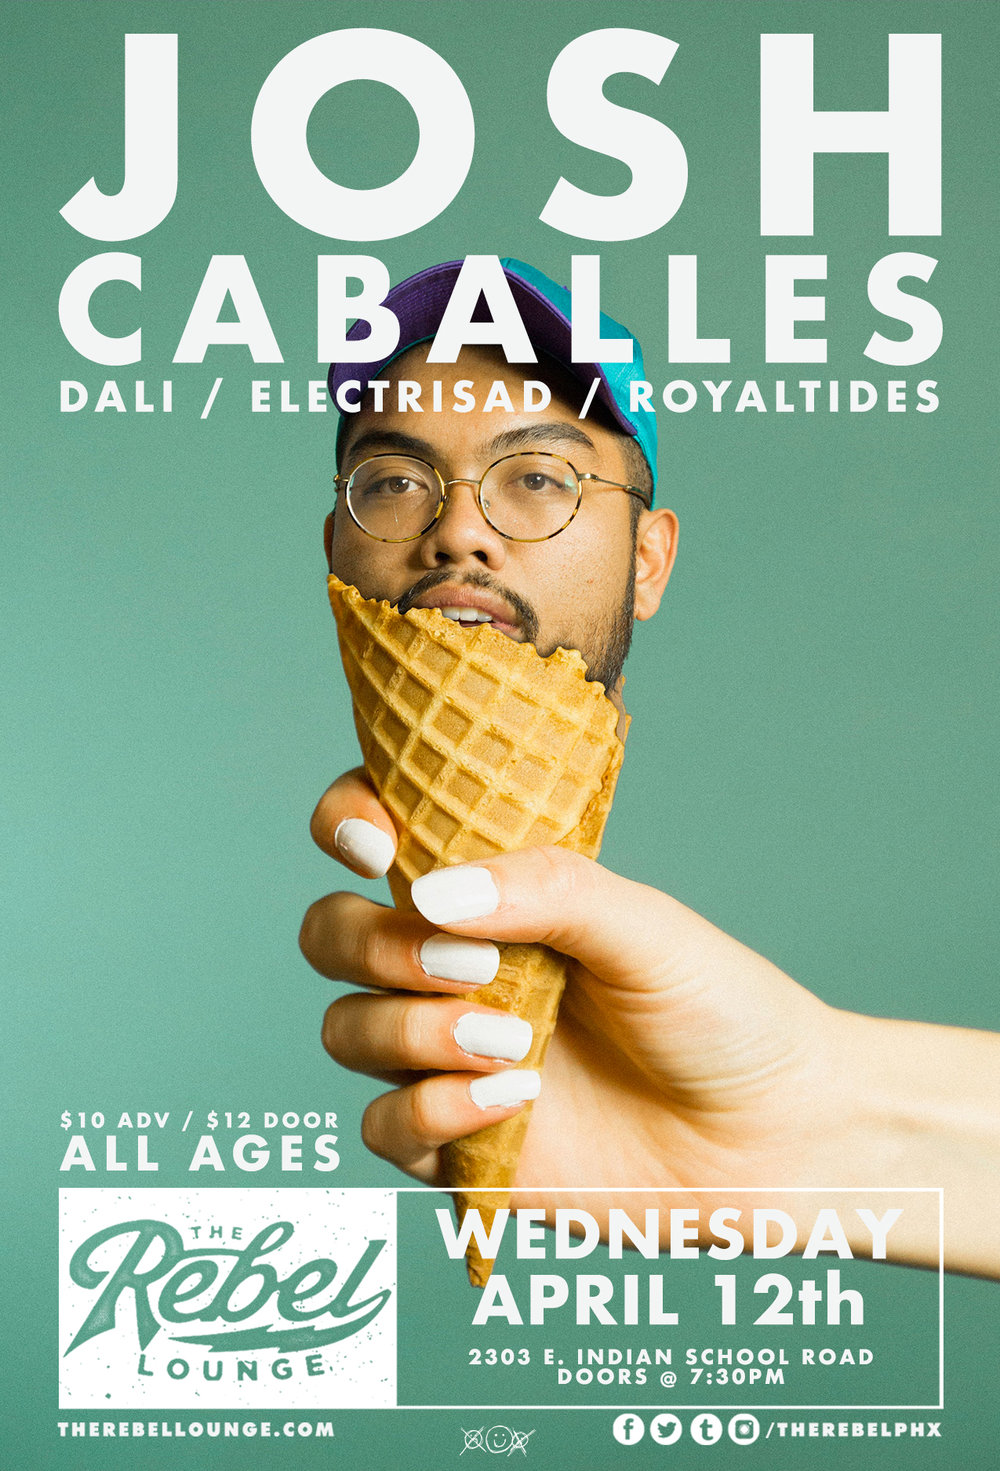 Josh Caballes ft Dali - Electrisad - Royal Tides - 4.12.17. | 7:30PM | 2303 E Indian School Road Doors